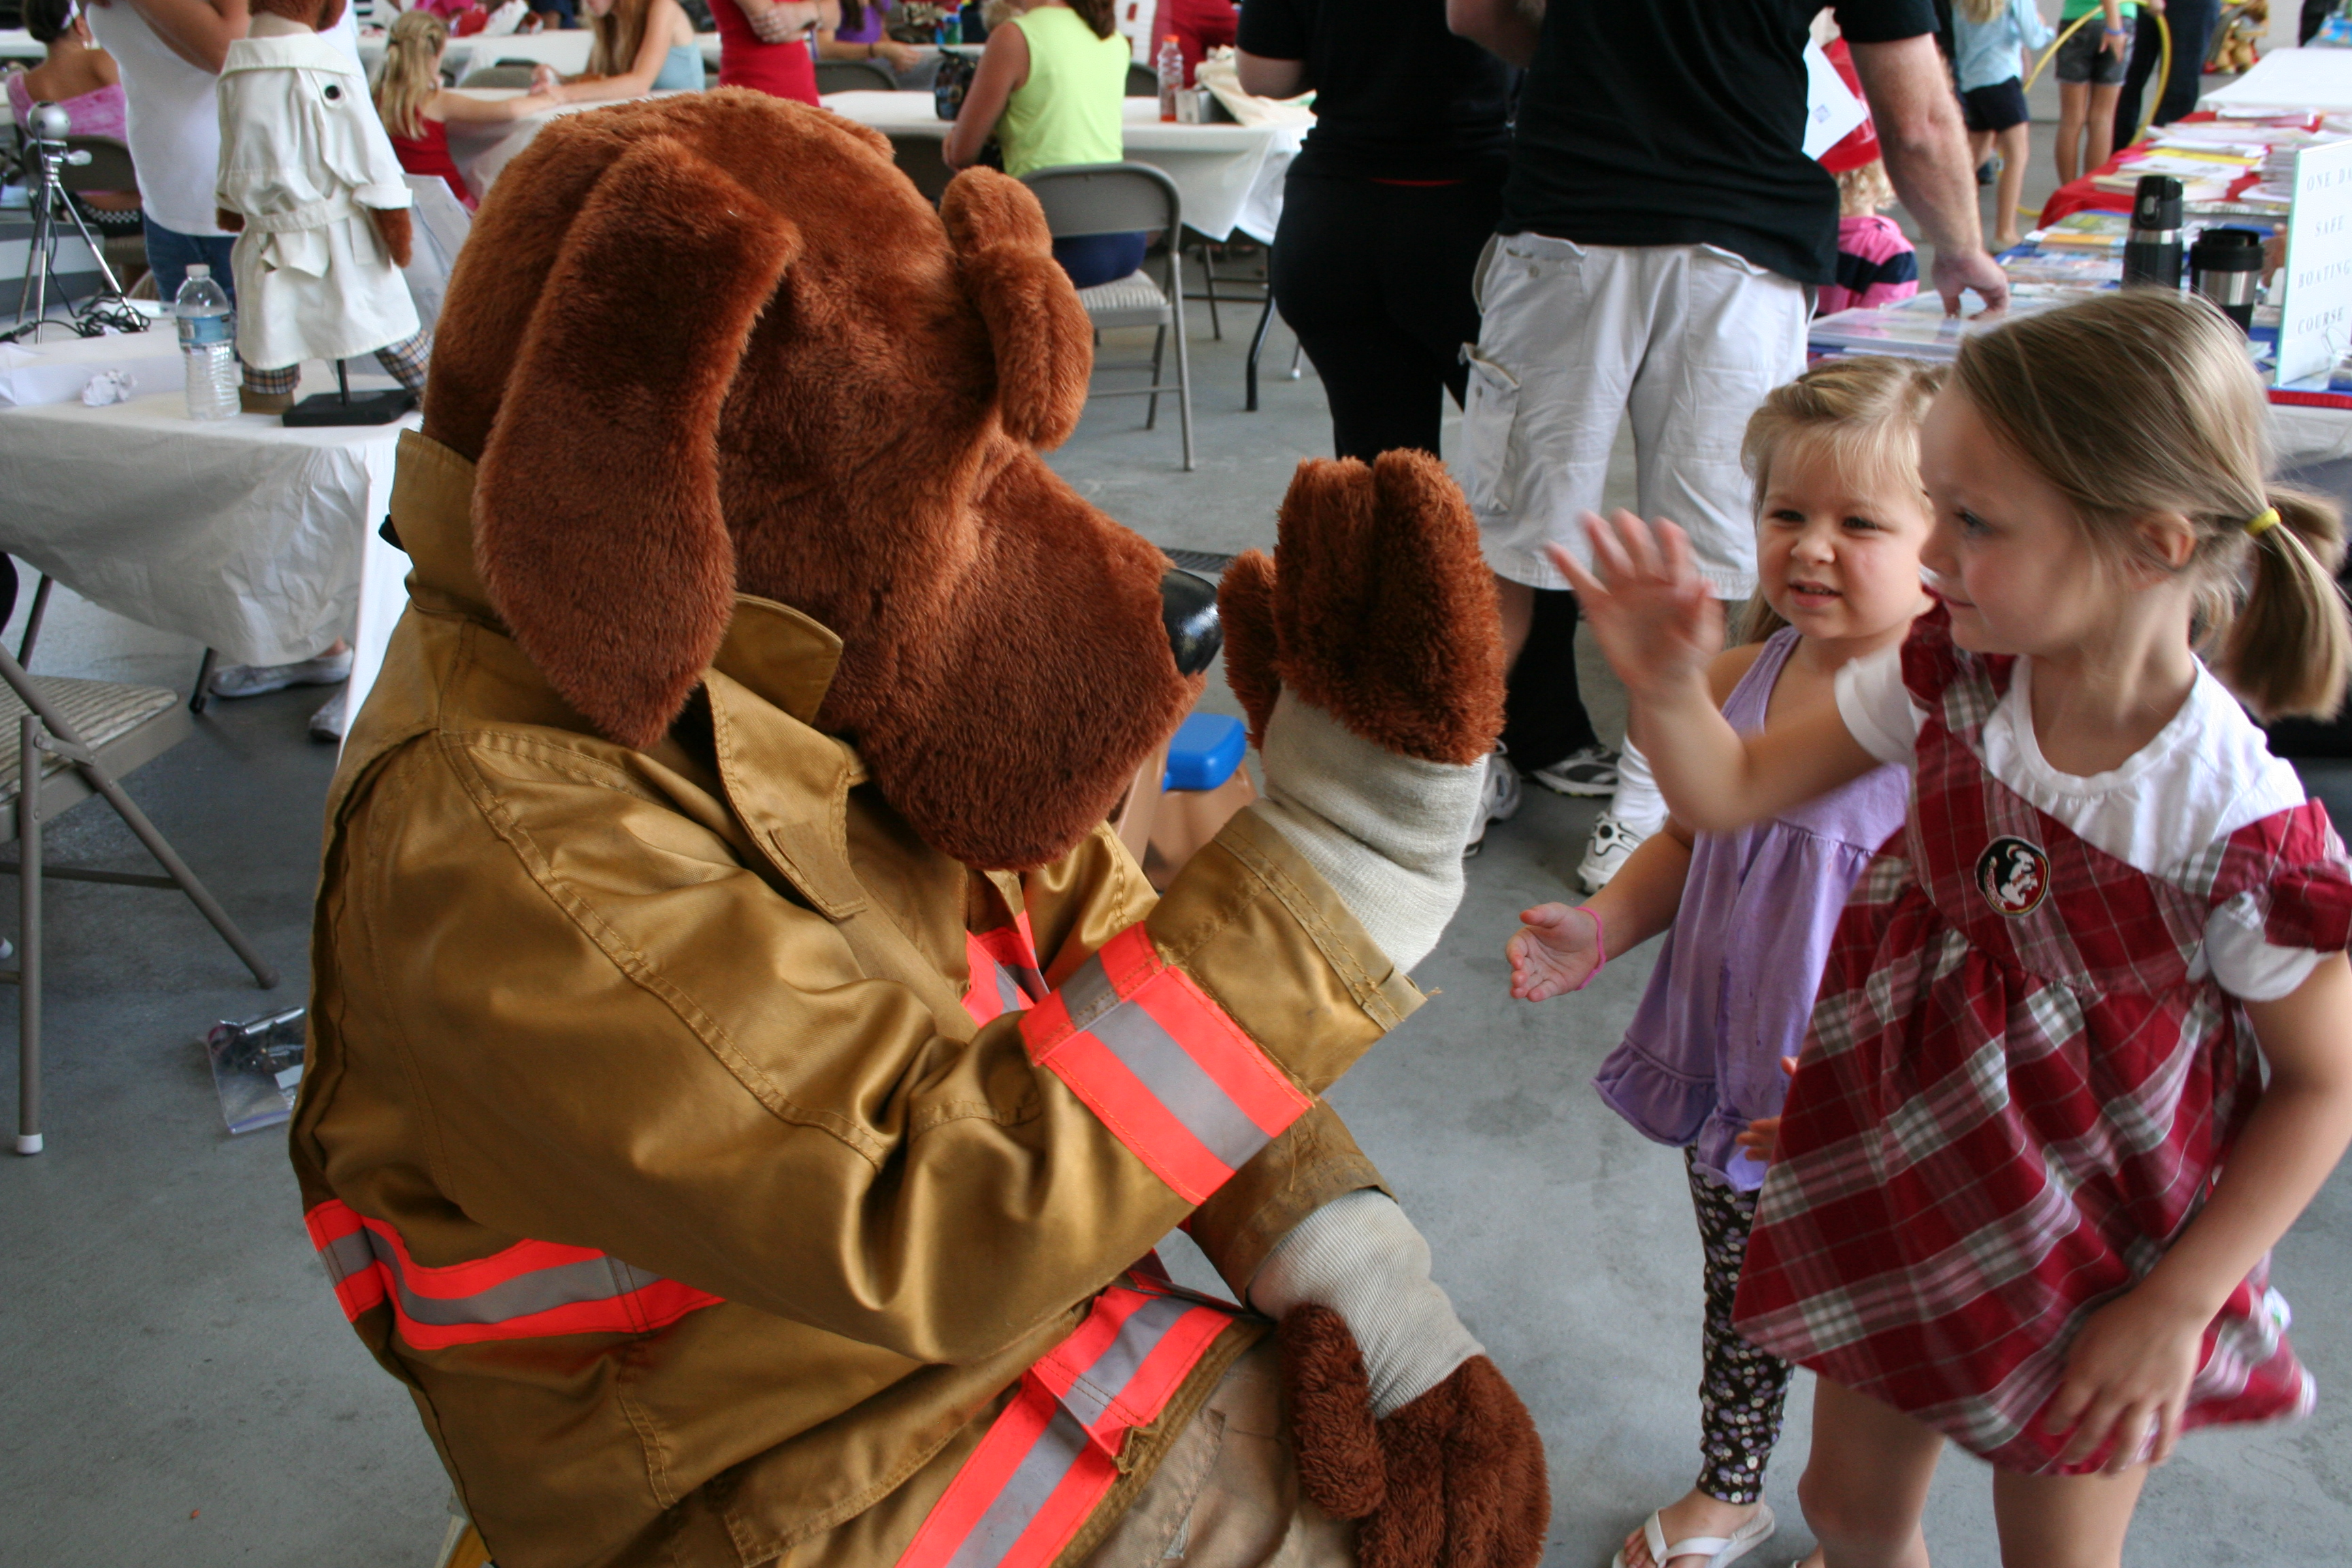 Fire Dog Mascot Gives Young Participants a High-5